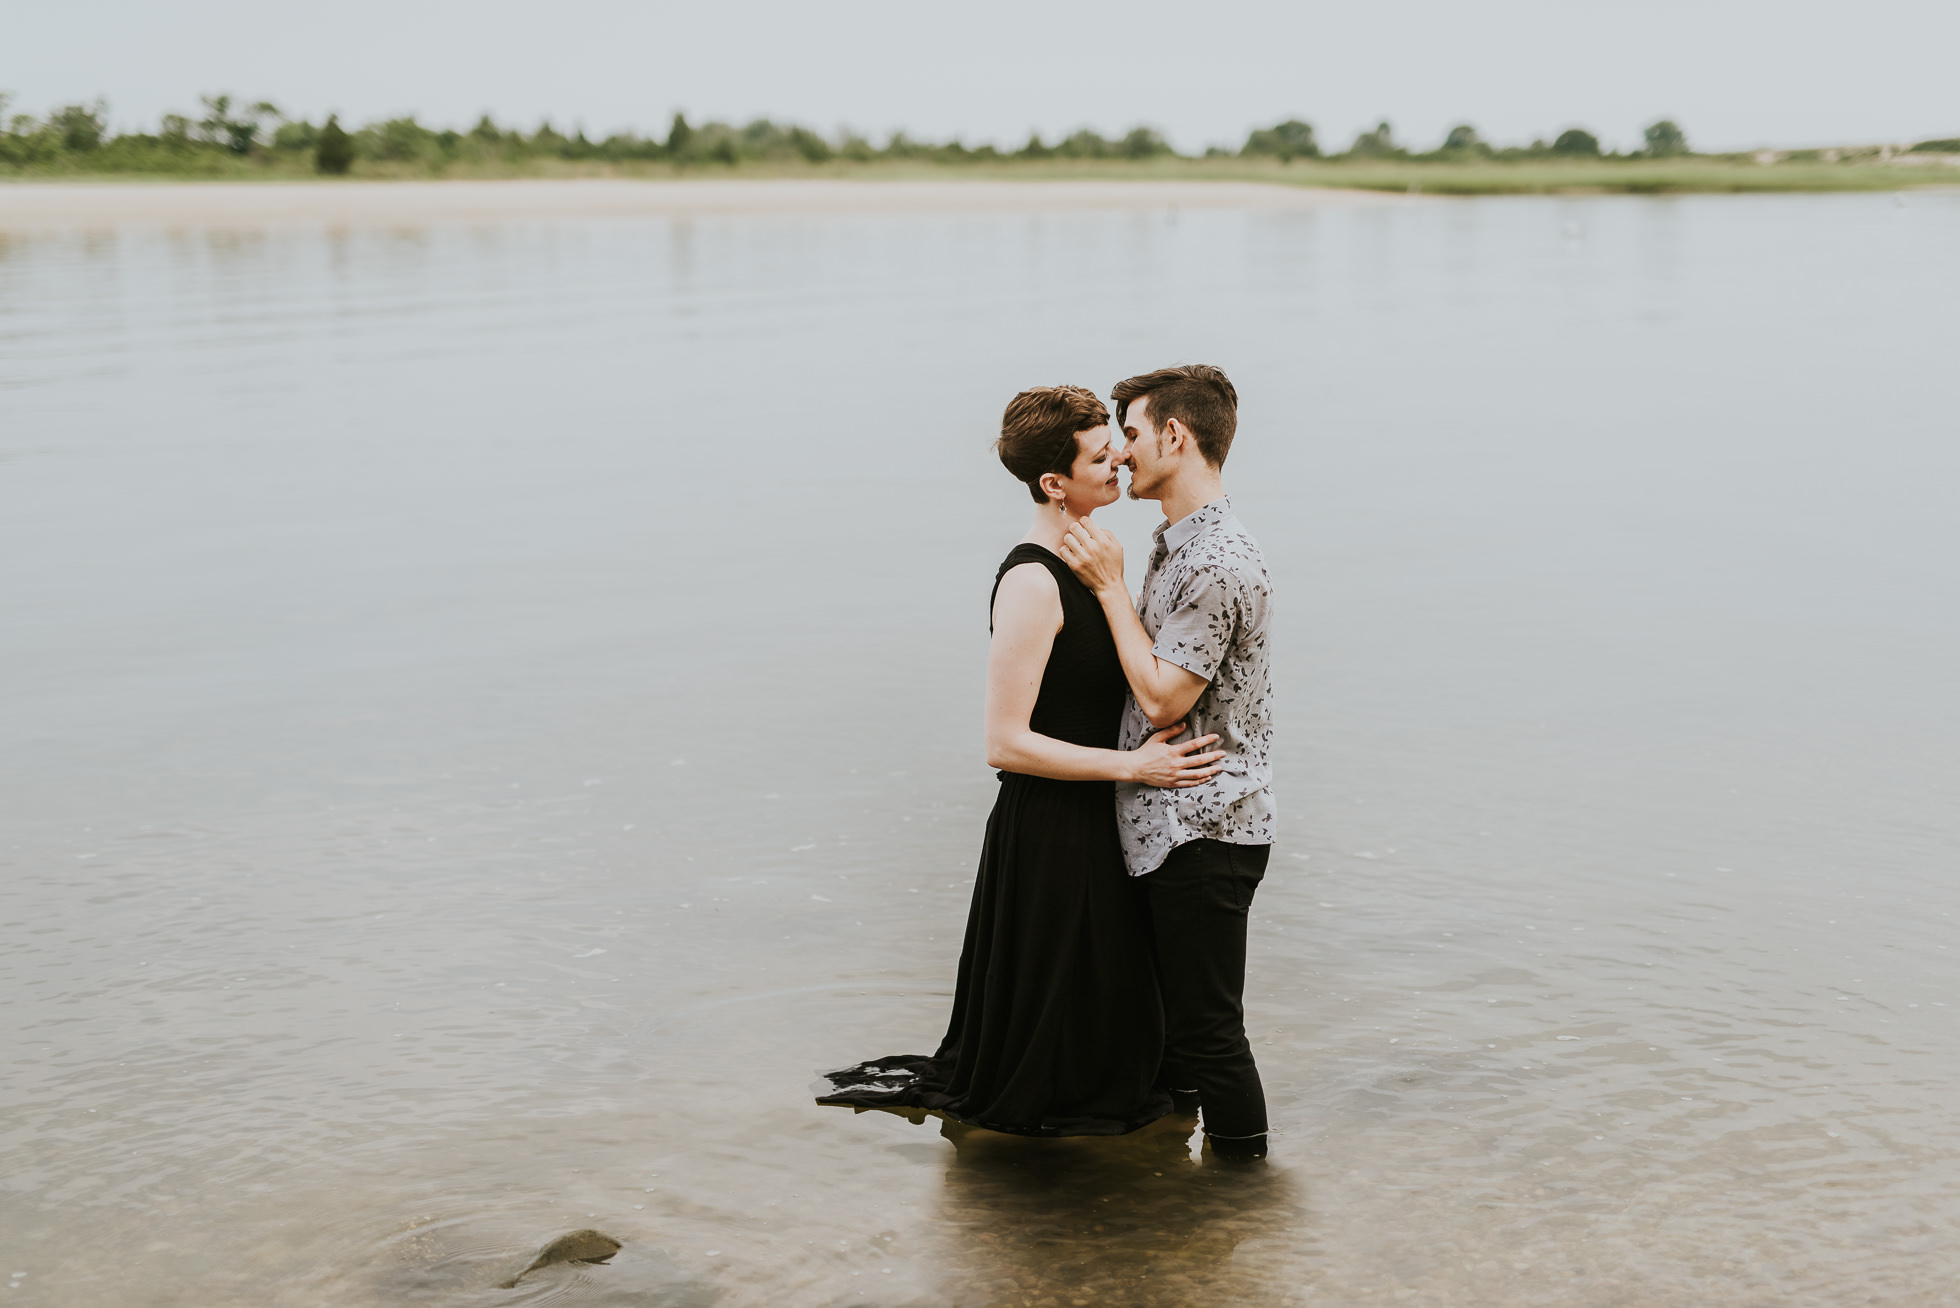 wedding photos in water photographed by traverse the tides